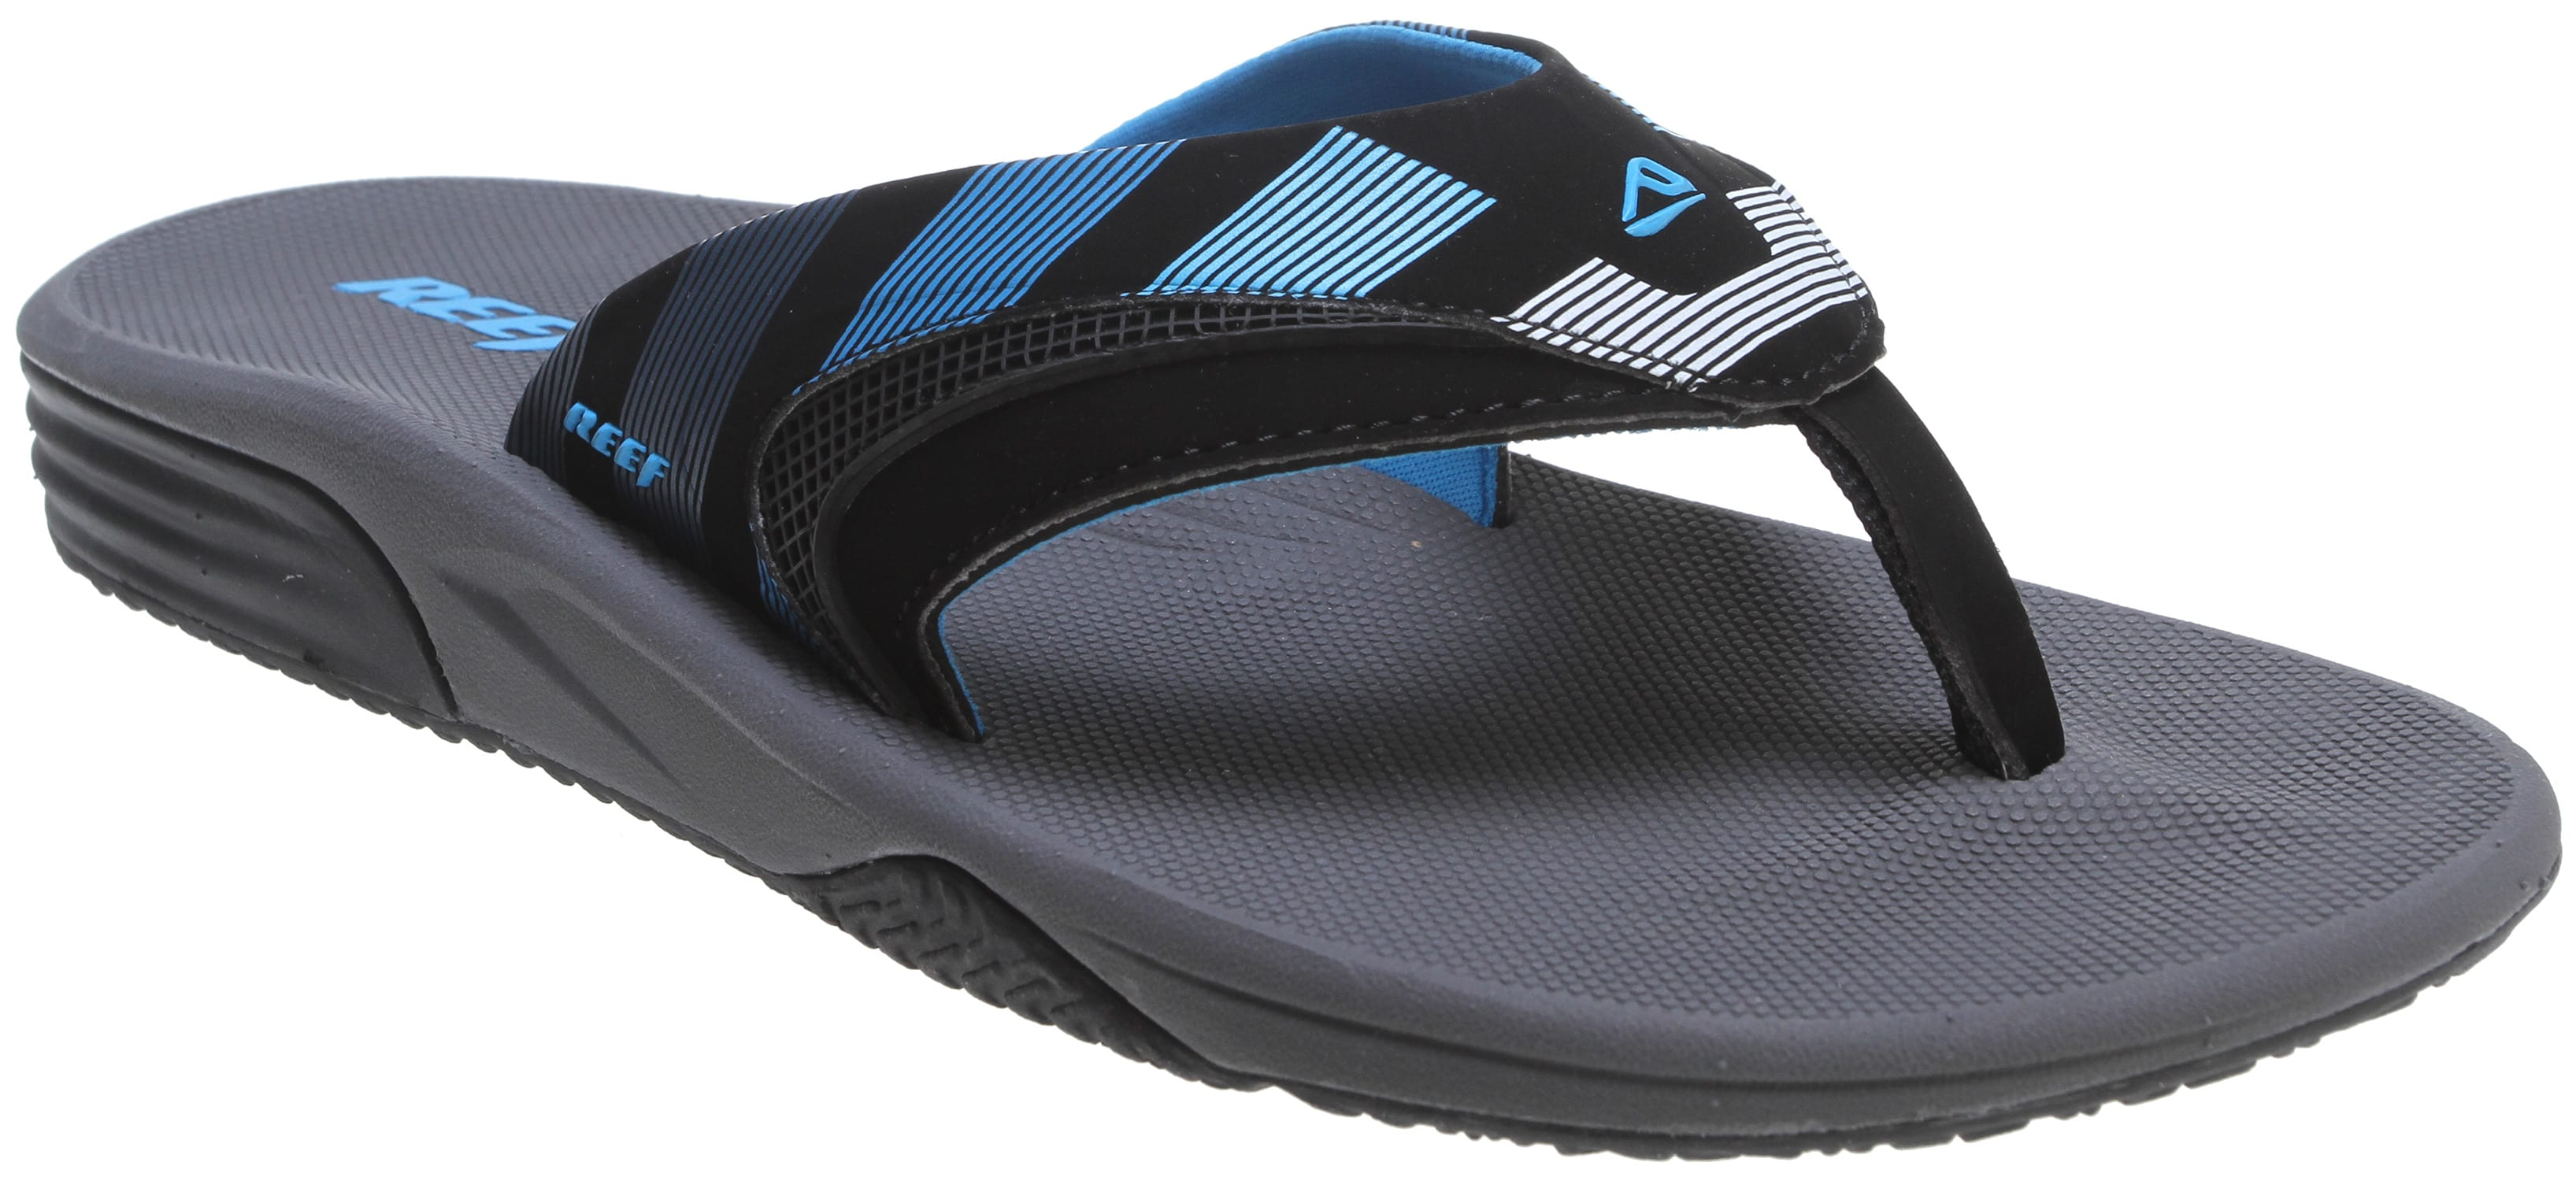 620158489c0 Reef Phantom Player Prints Sandals - thumbnail 2